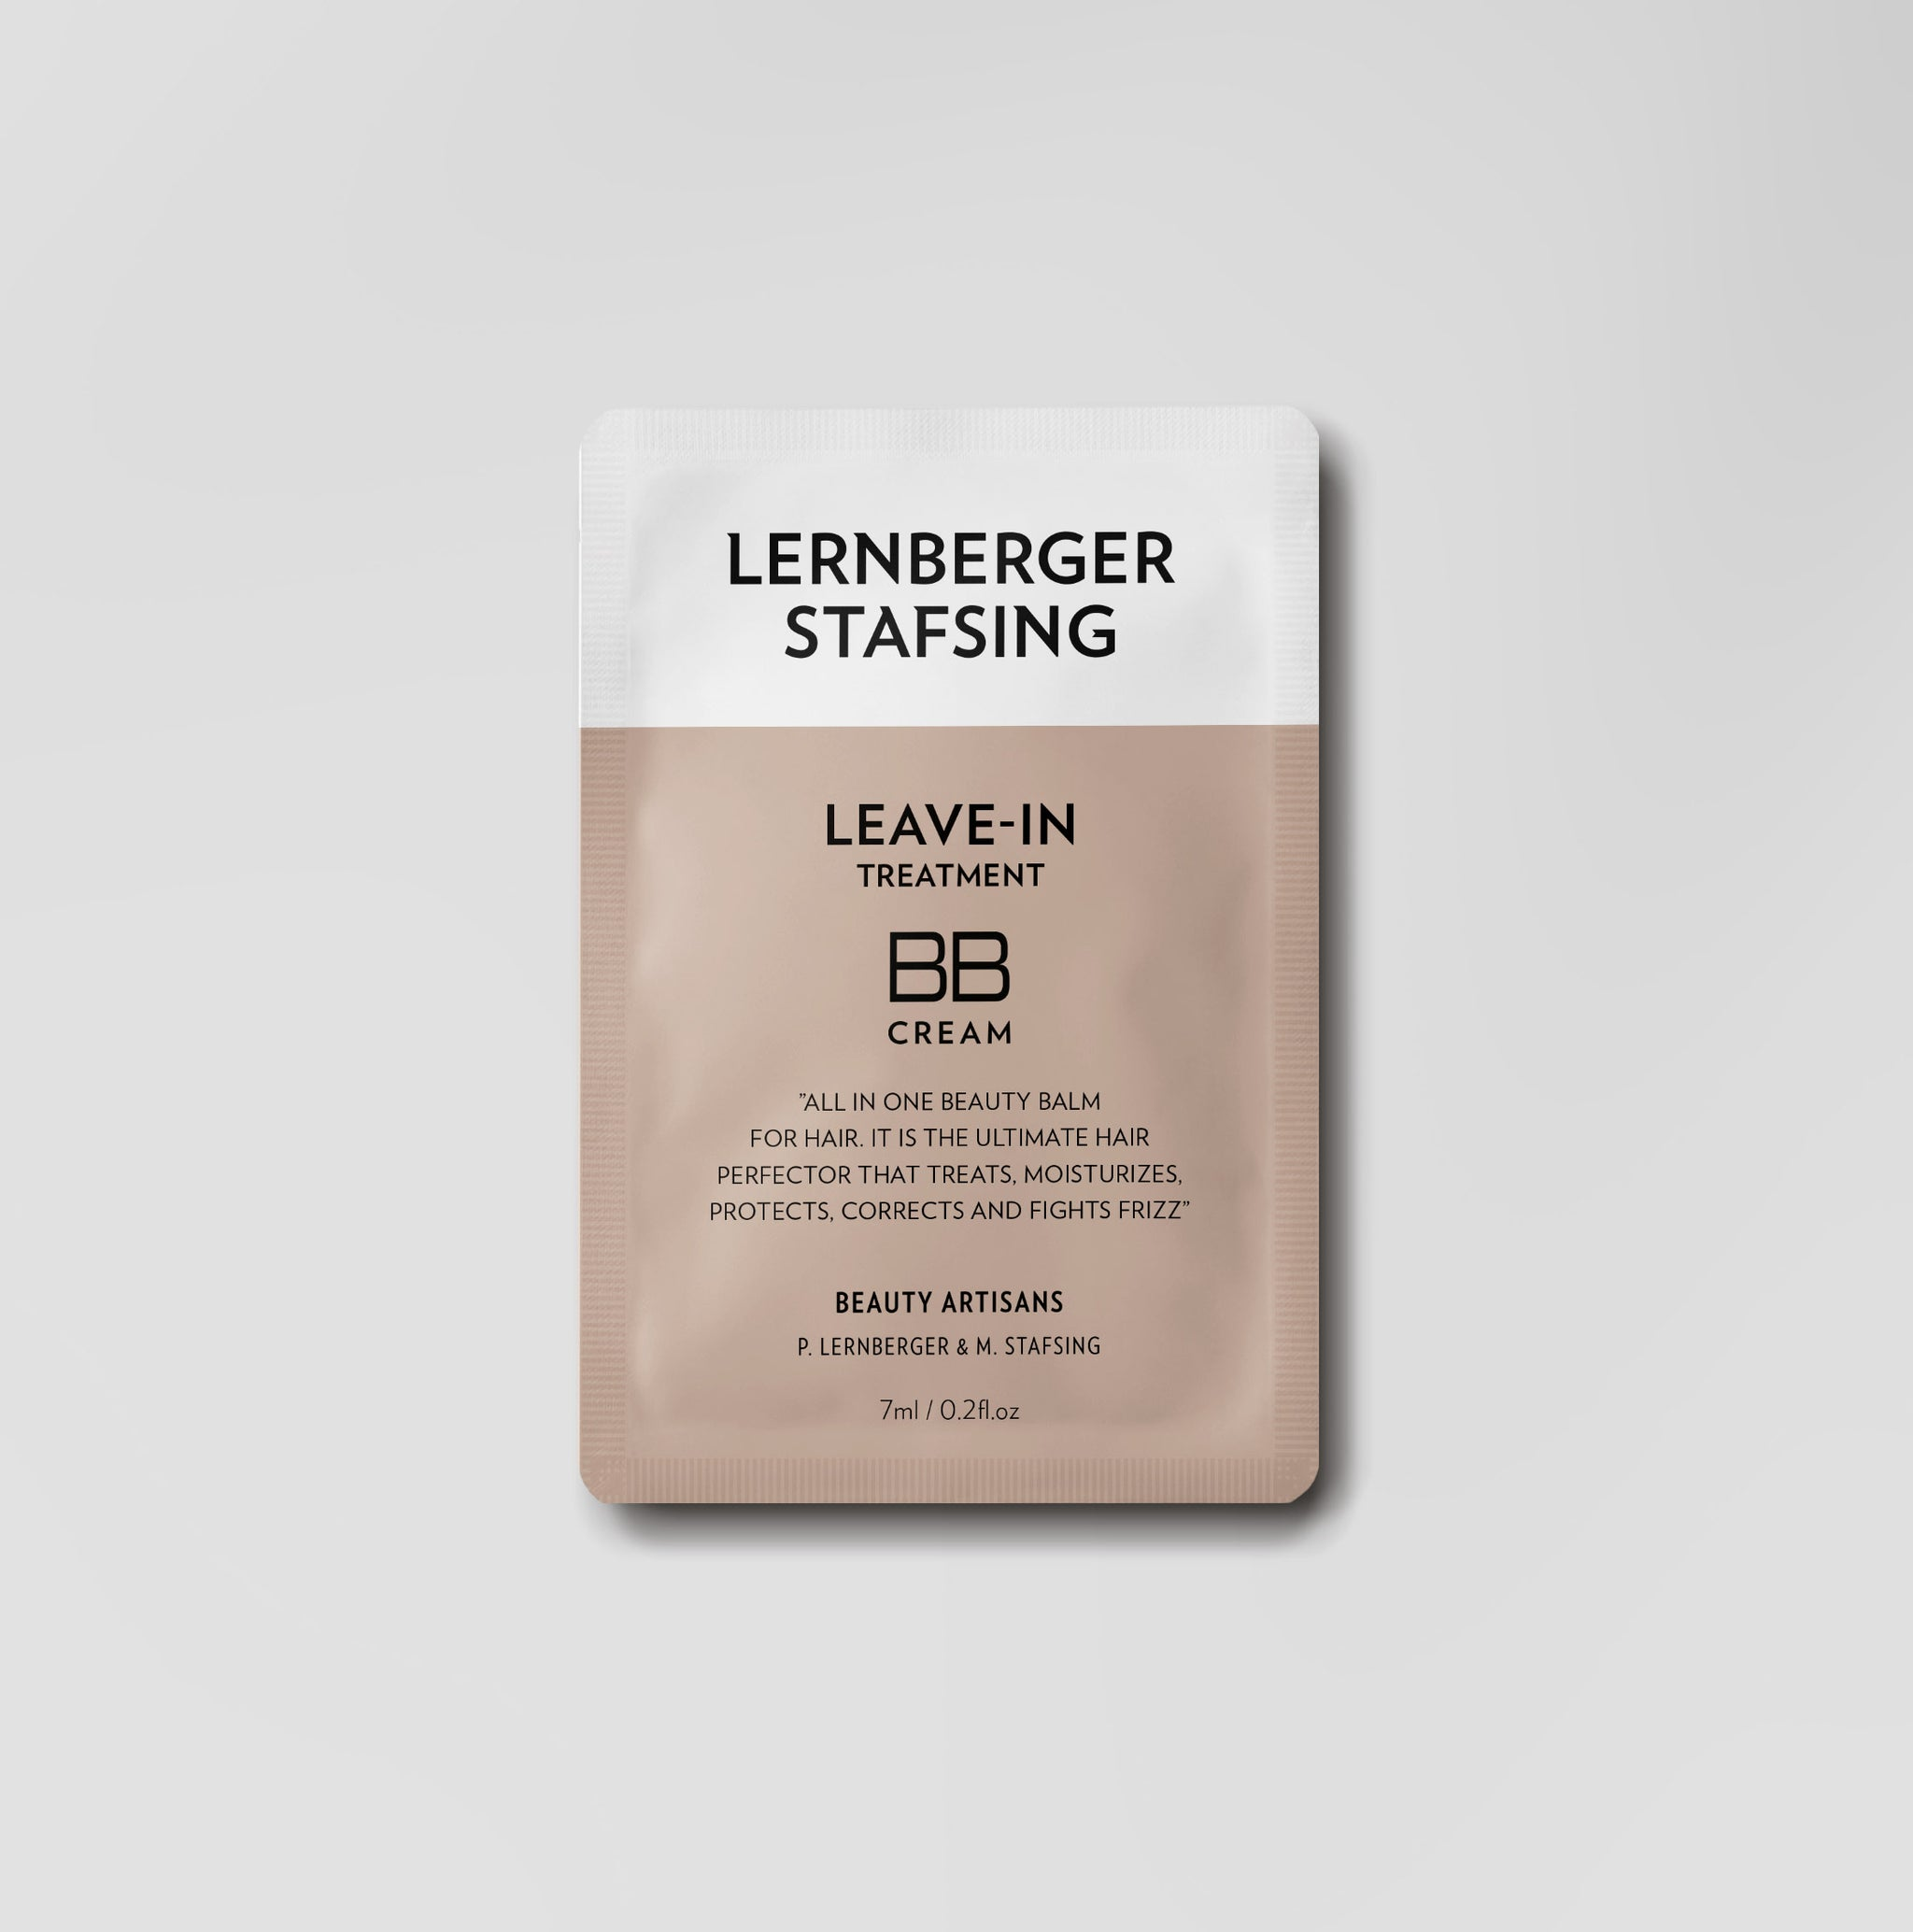 Lernberger Stafsing Leave-in Hair Treatment BB Cream (7ml Sample)